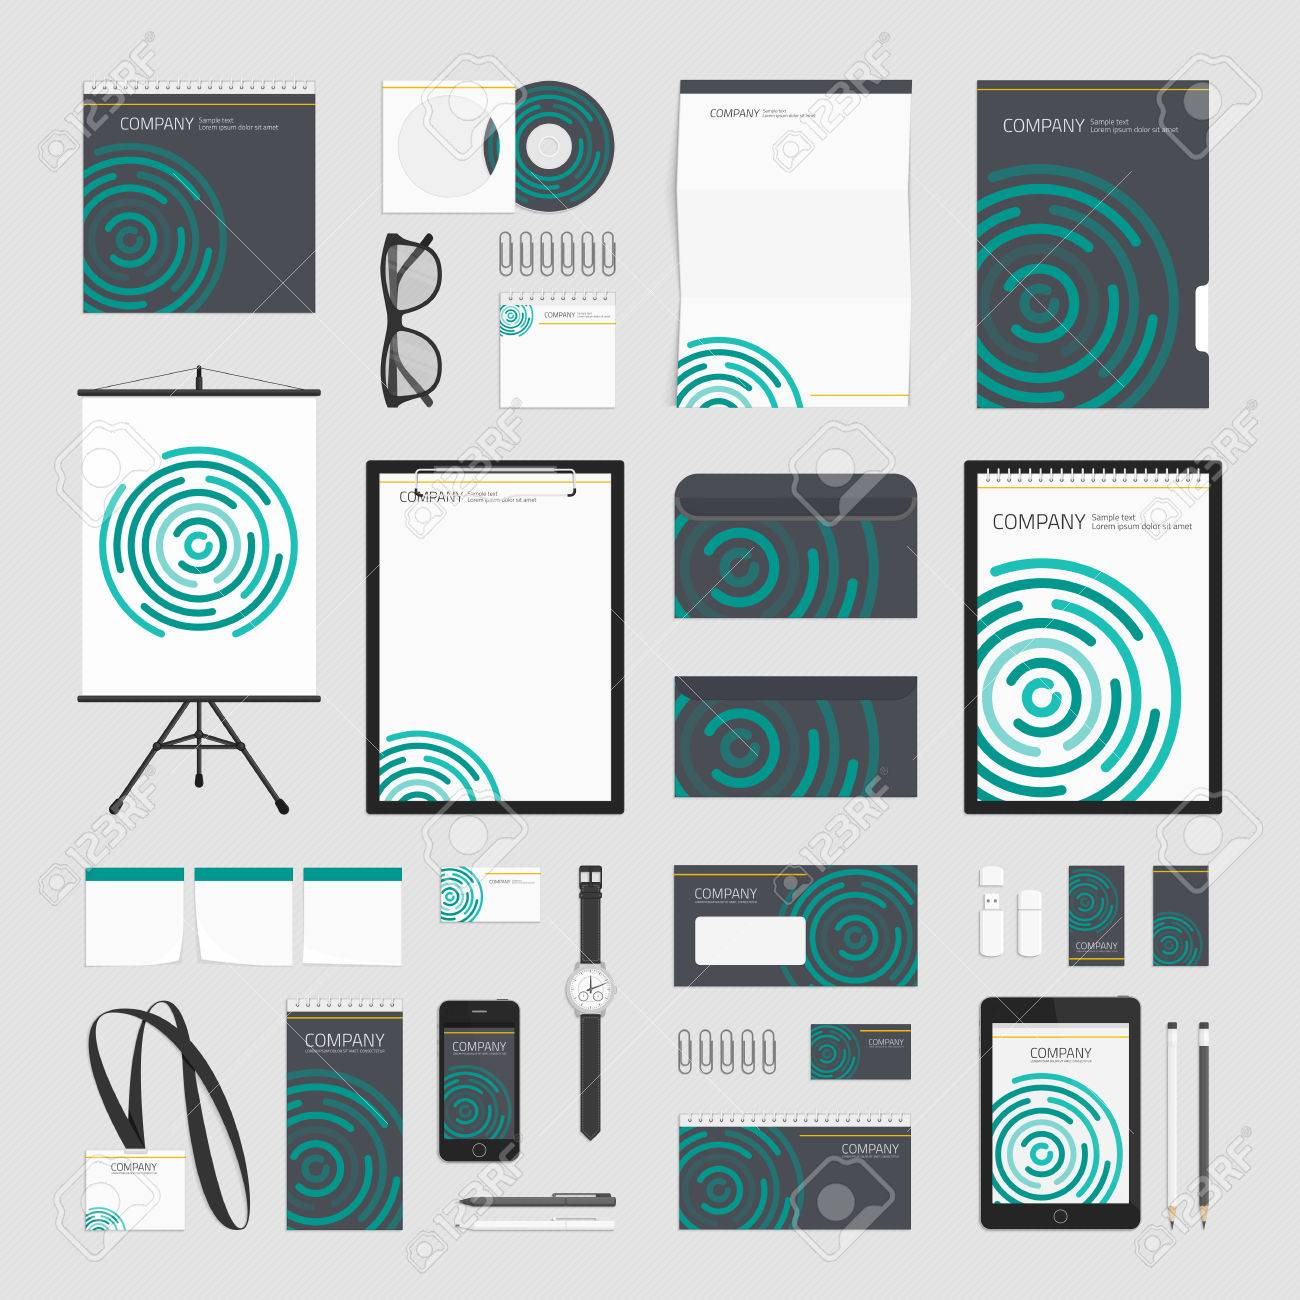 circular ripple wave corporate identity template vector company style for brand book or guideline